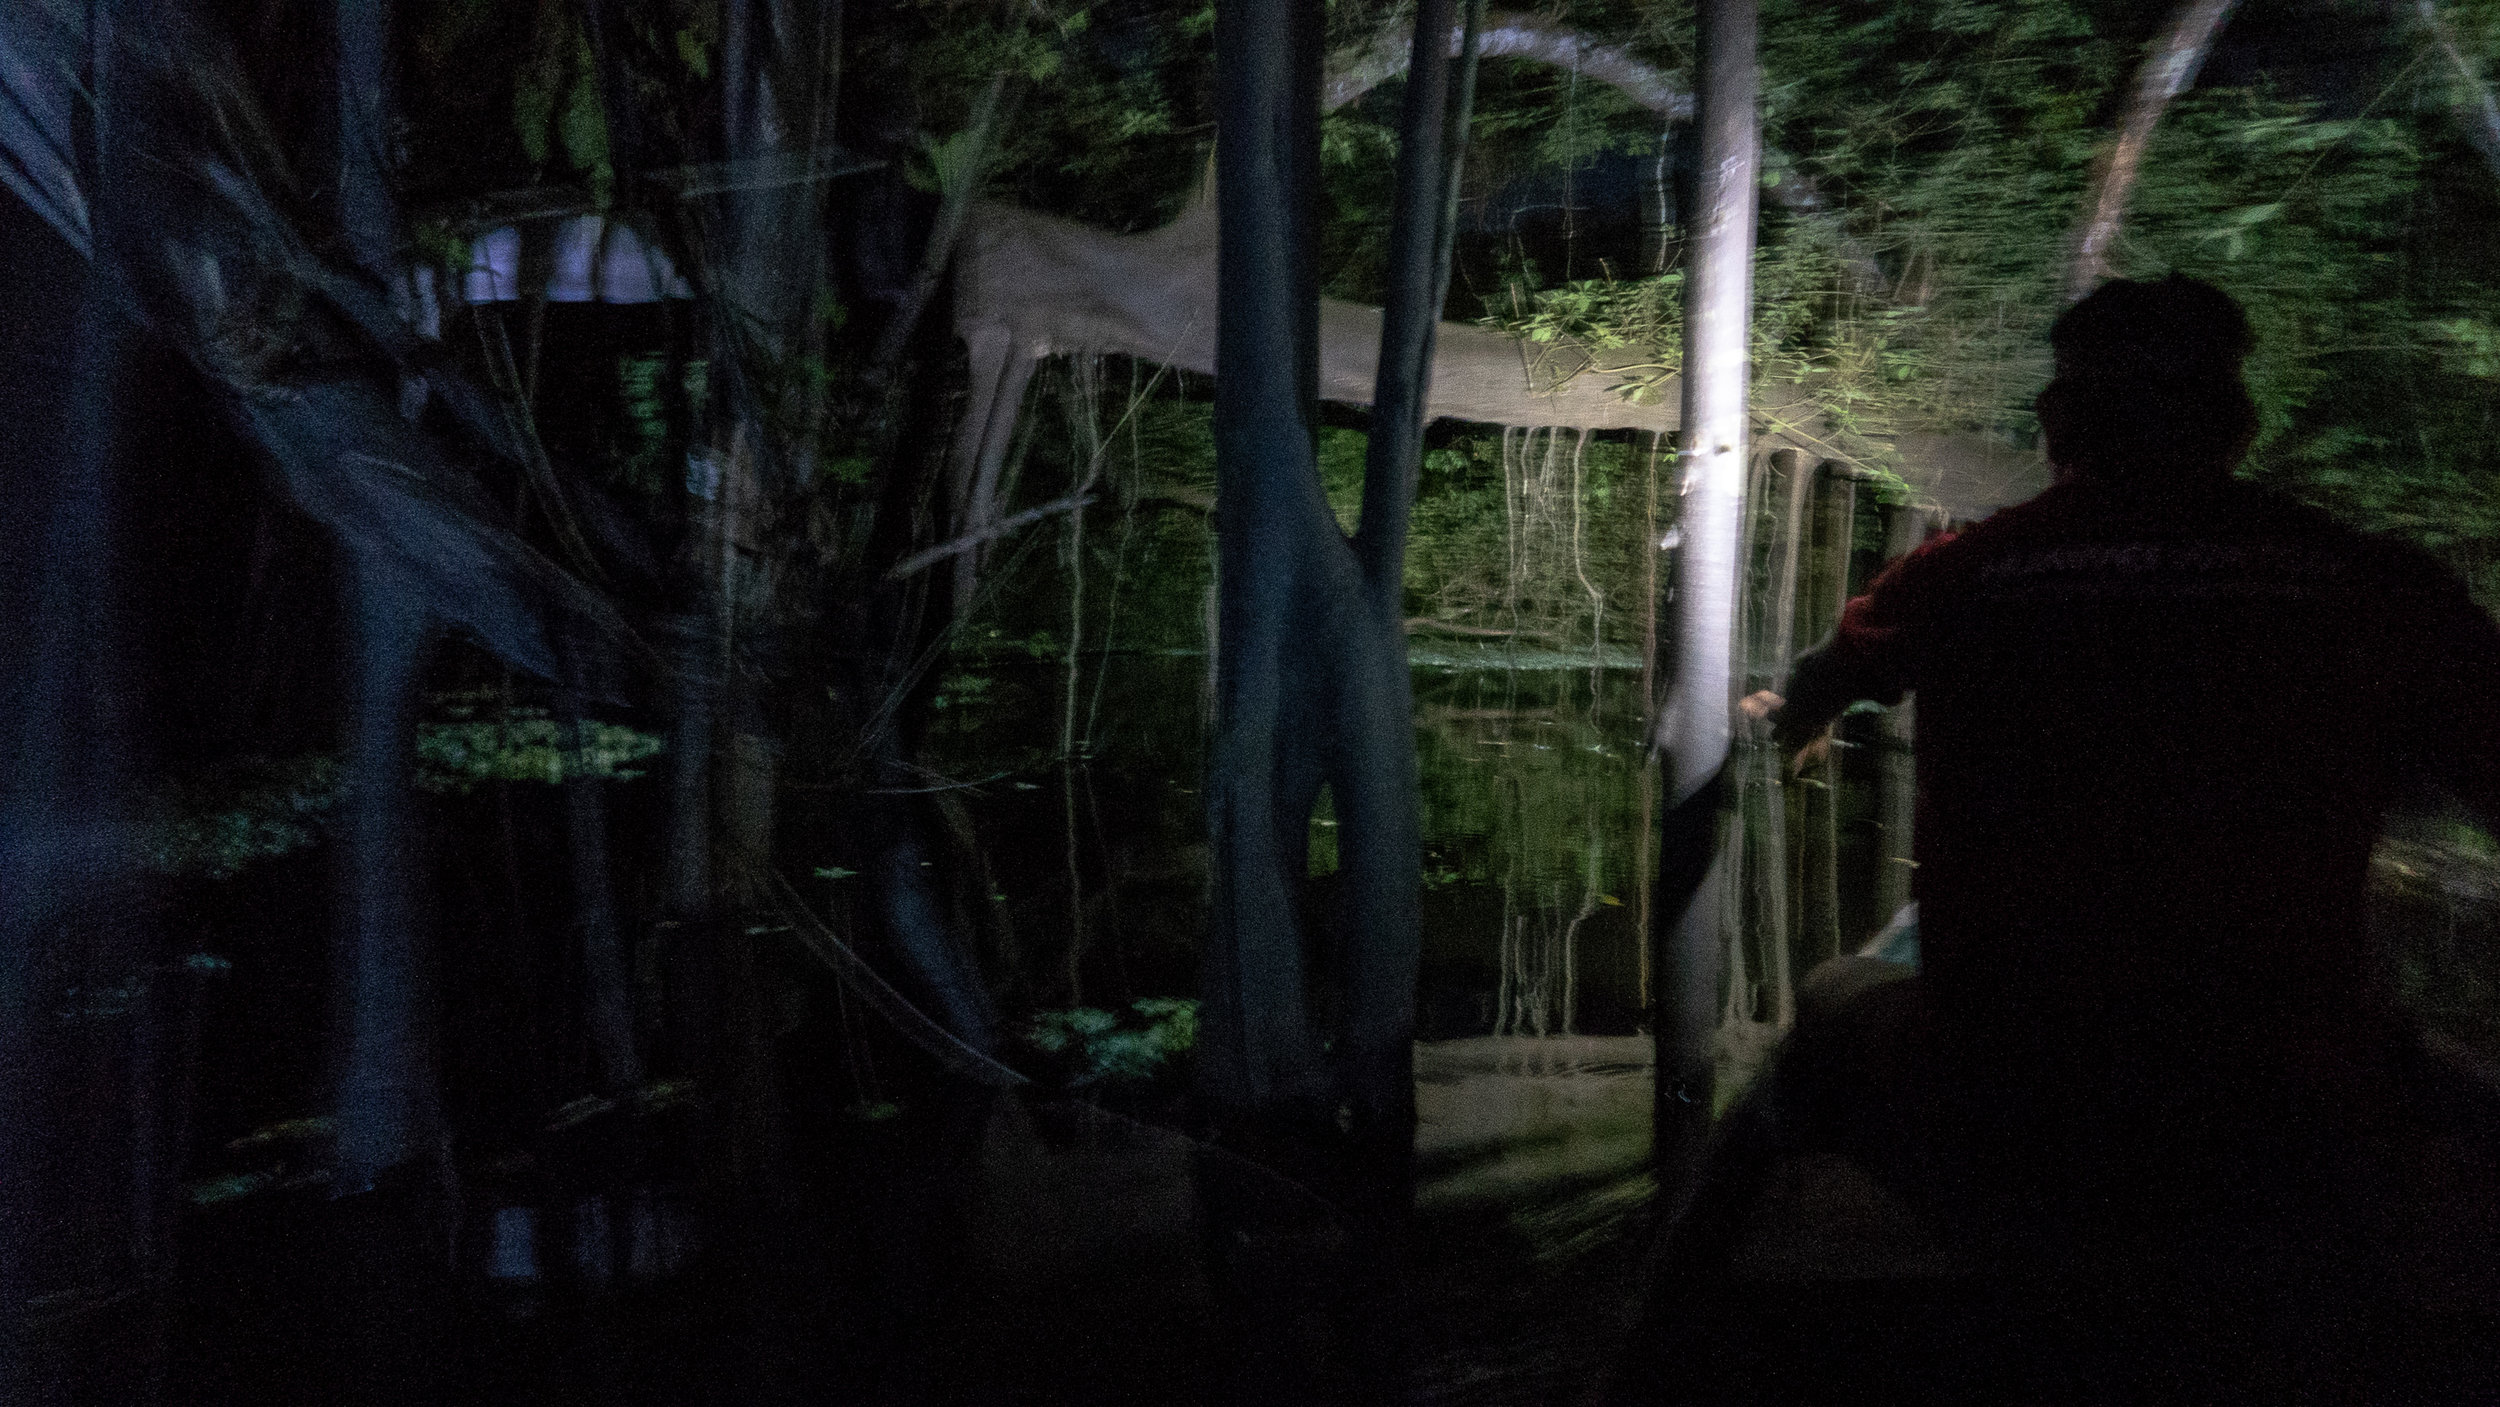 Magical night-time canoing among the rainforest